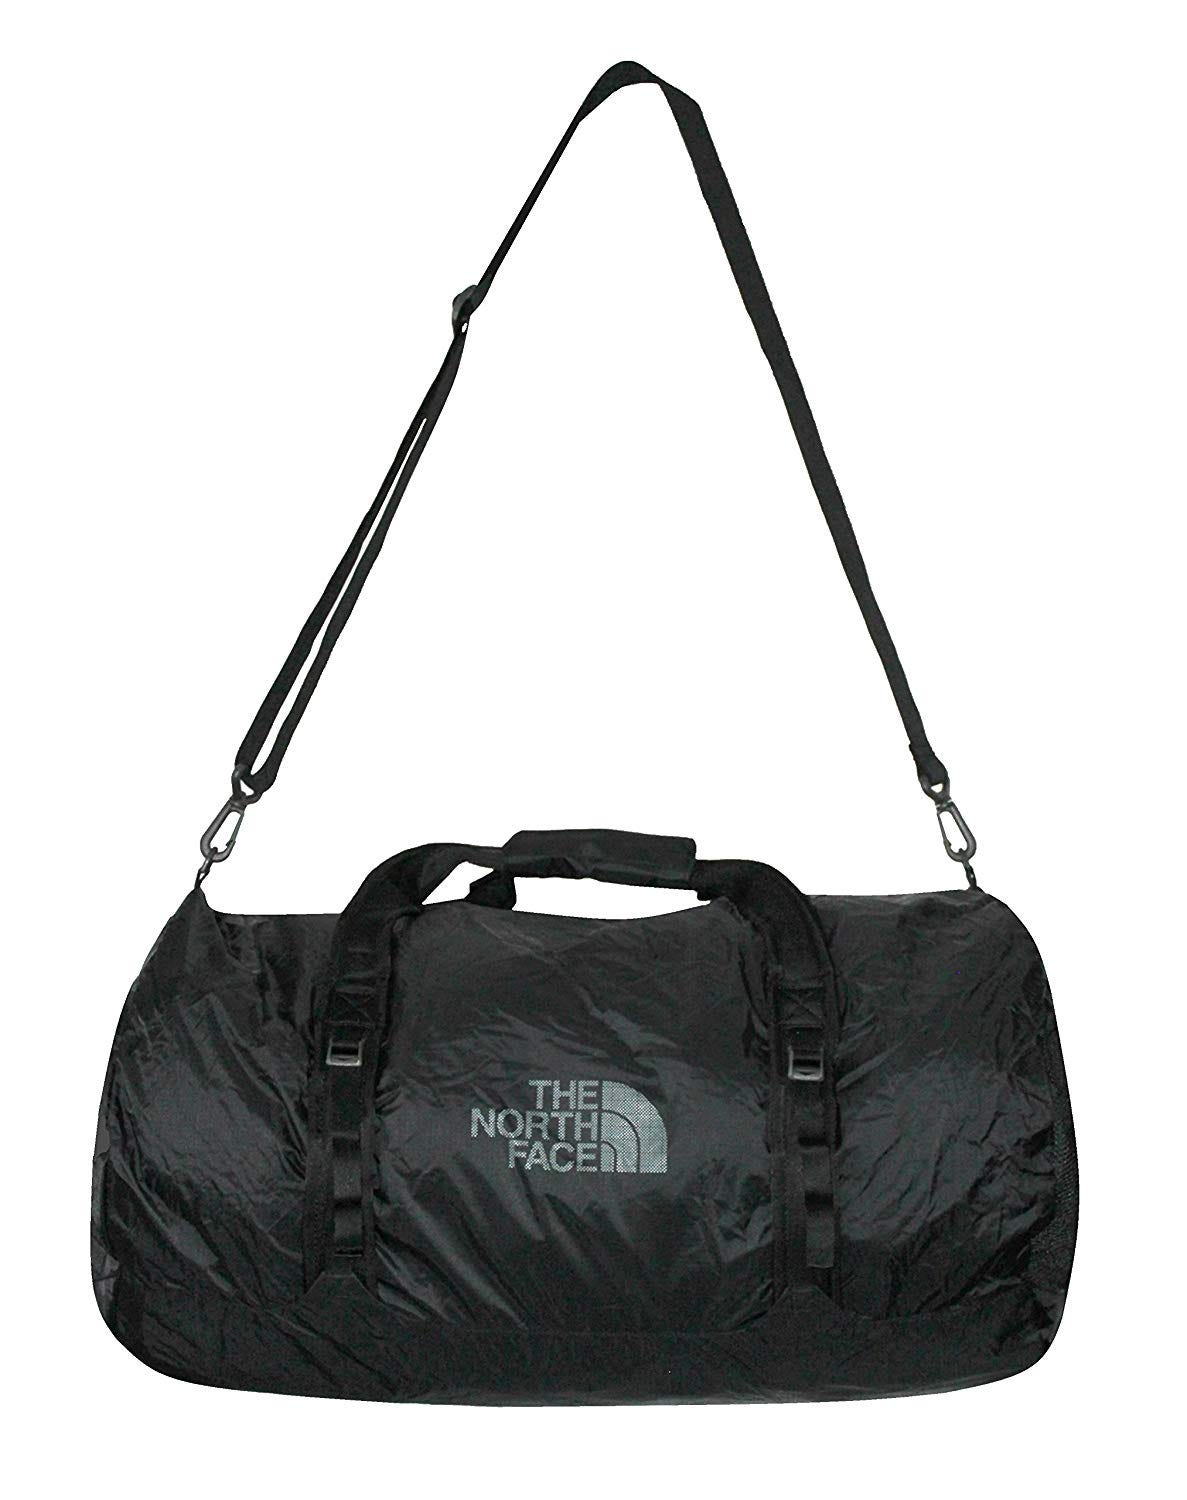 756d70fccec9 Best Gym Bags For Women - Fitness Totes